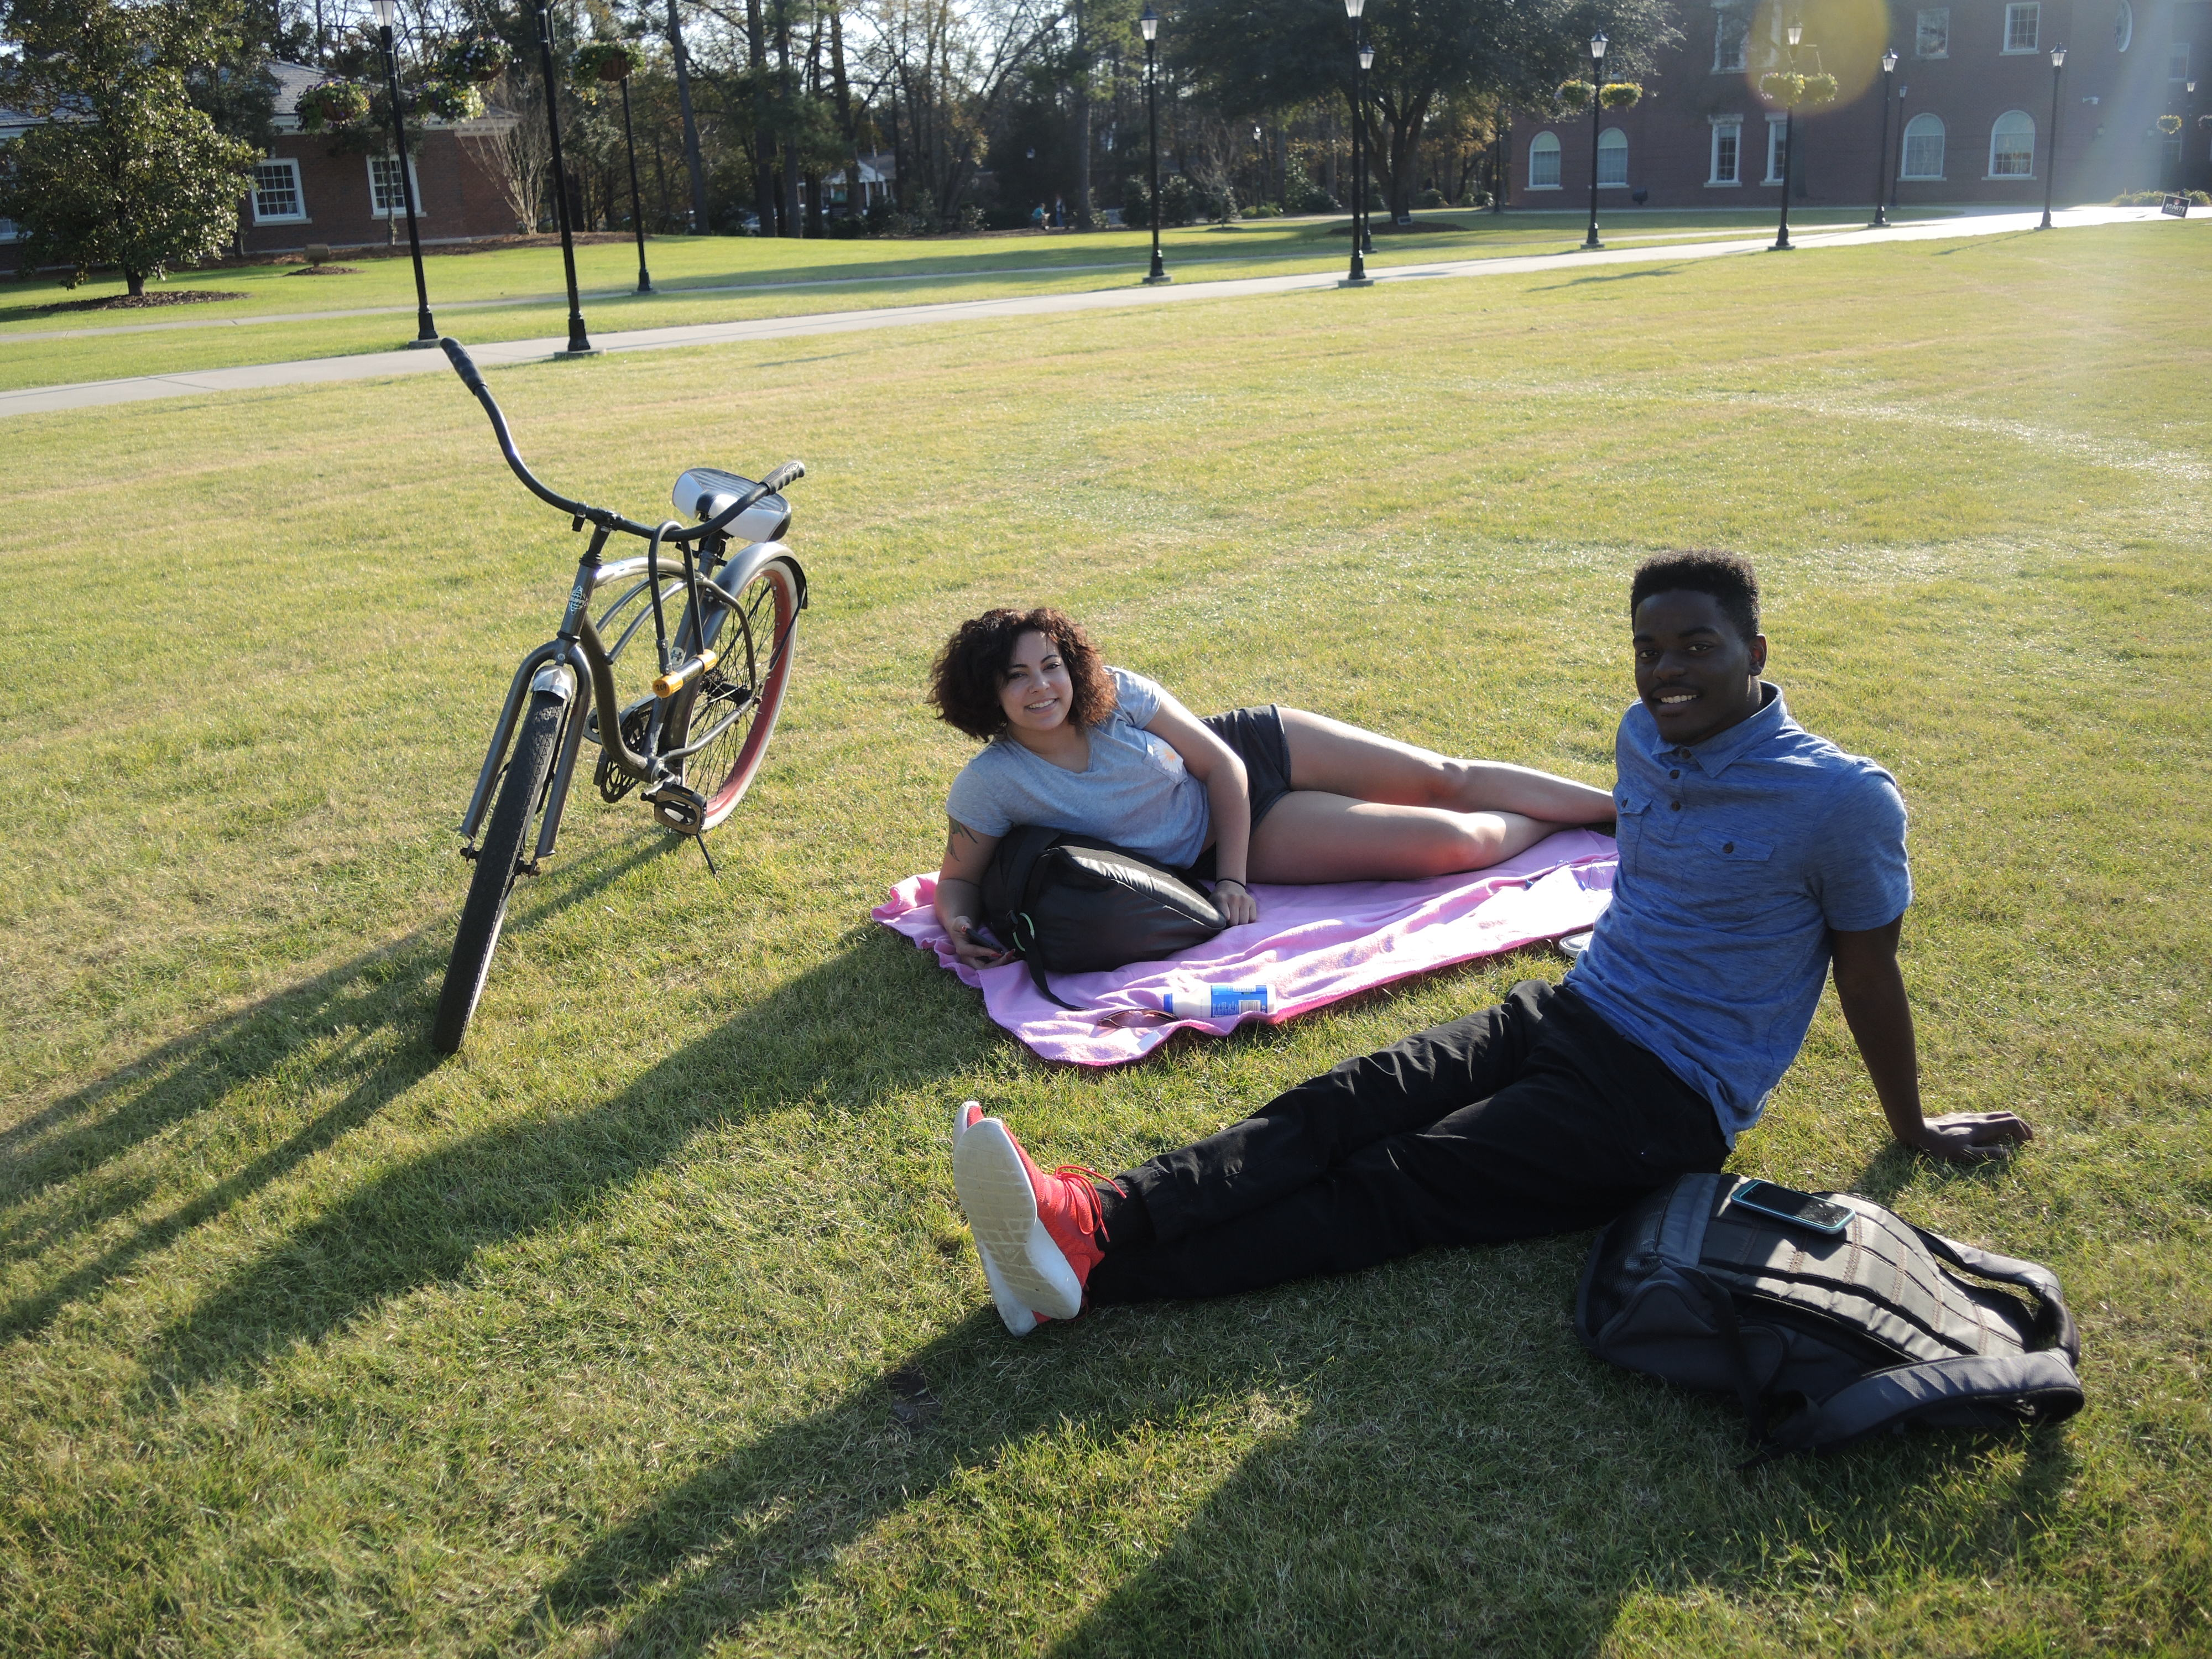 Nothing beats spending class breaks on Prince Lawn underneath the refreshing sun.